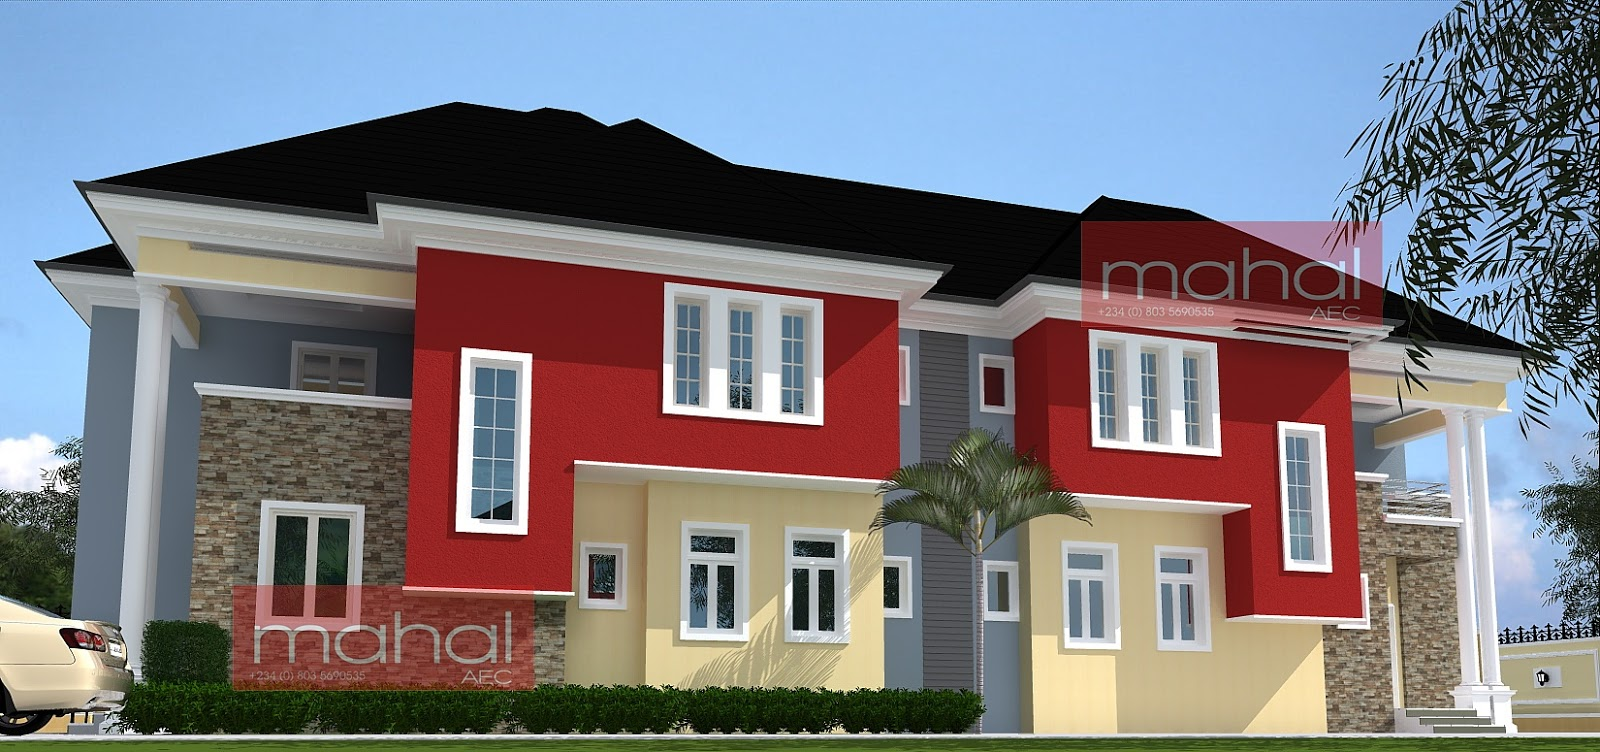 Contemporary nigerian residential architecture p uwa for Types of duplex houses